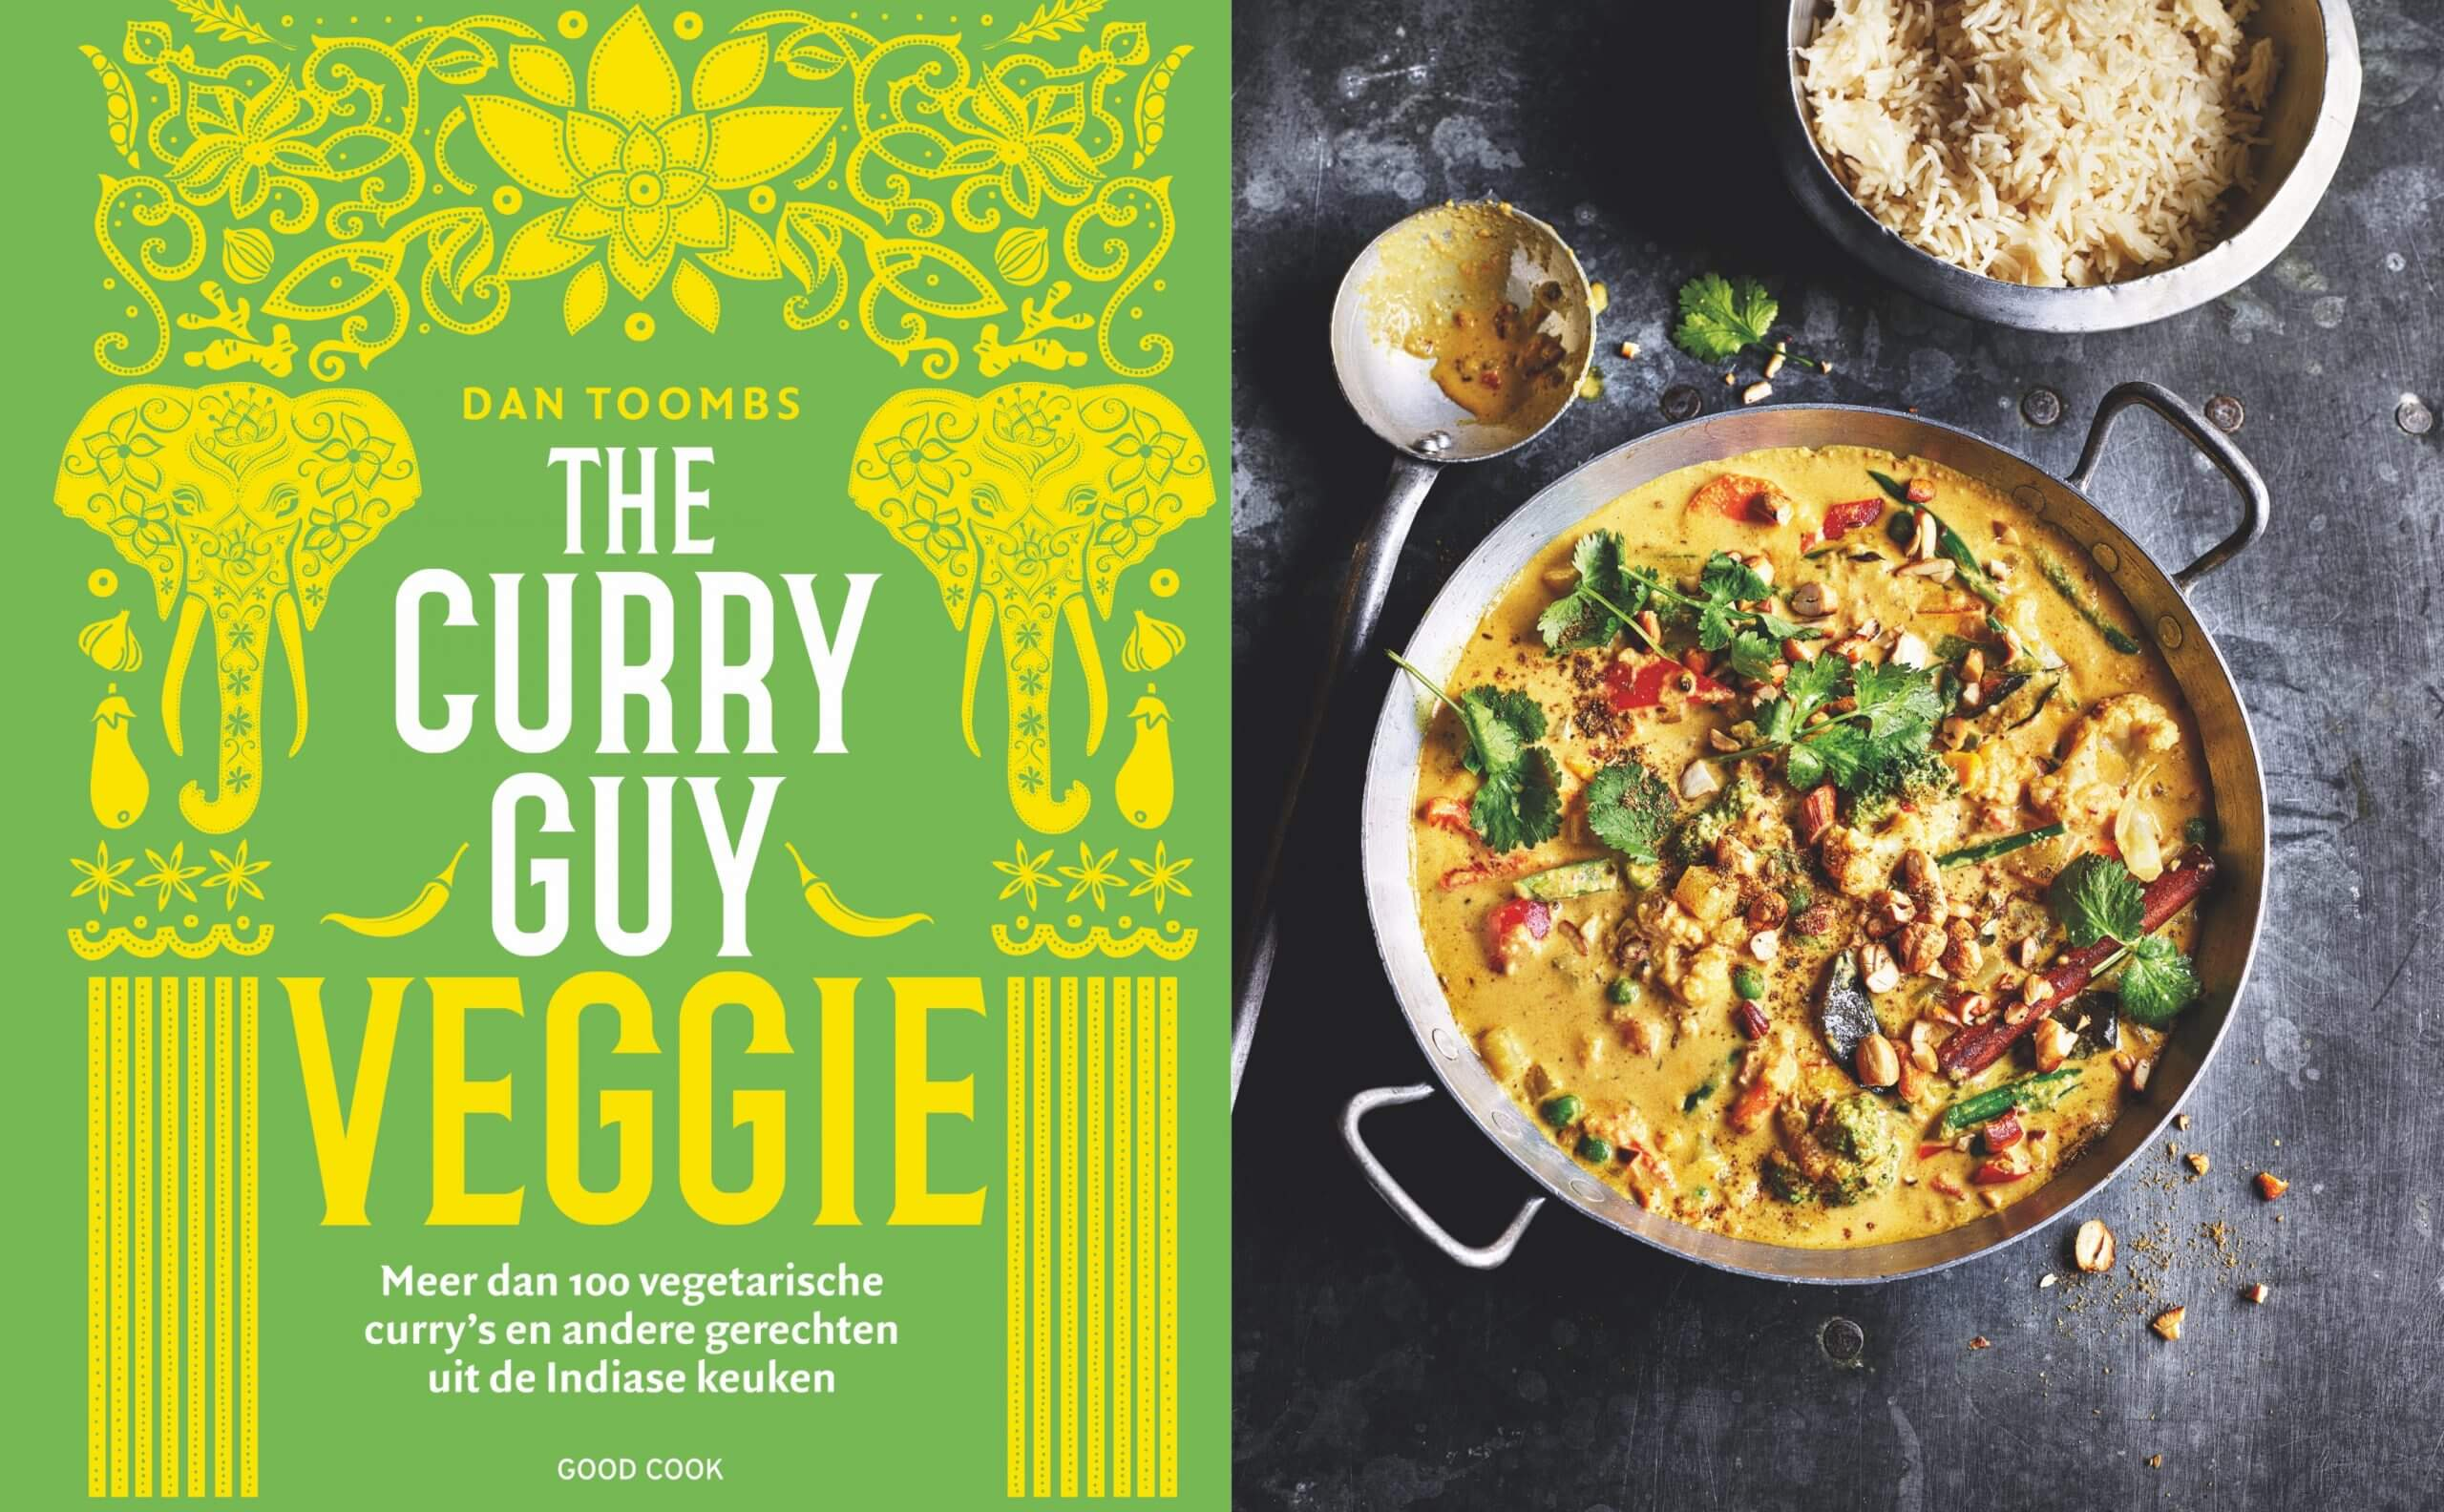 Kookboek review: The Curry Guy Veggie van Dan Toombs